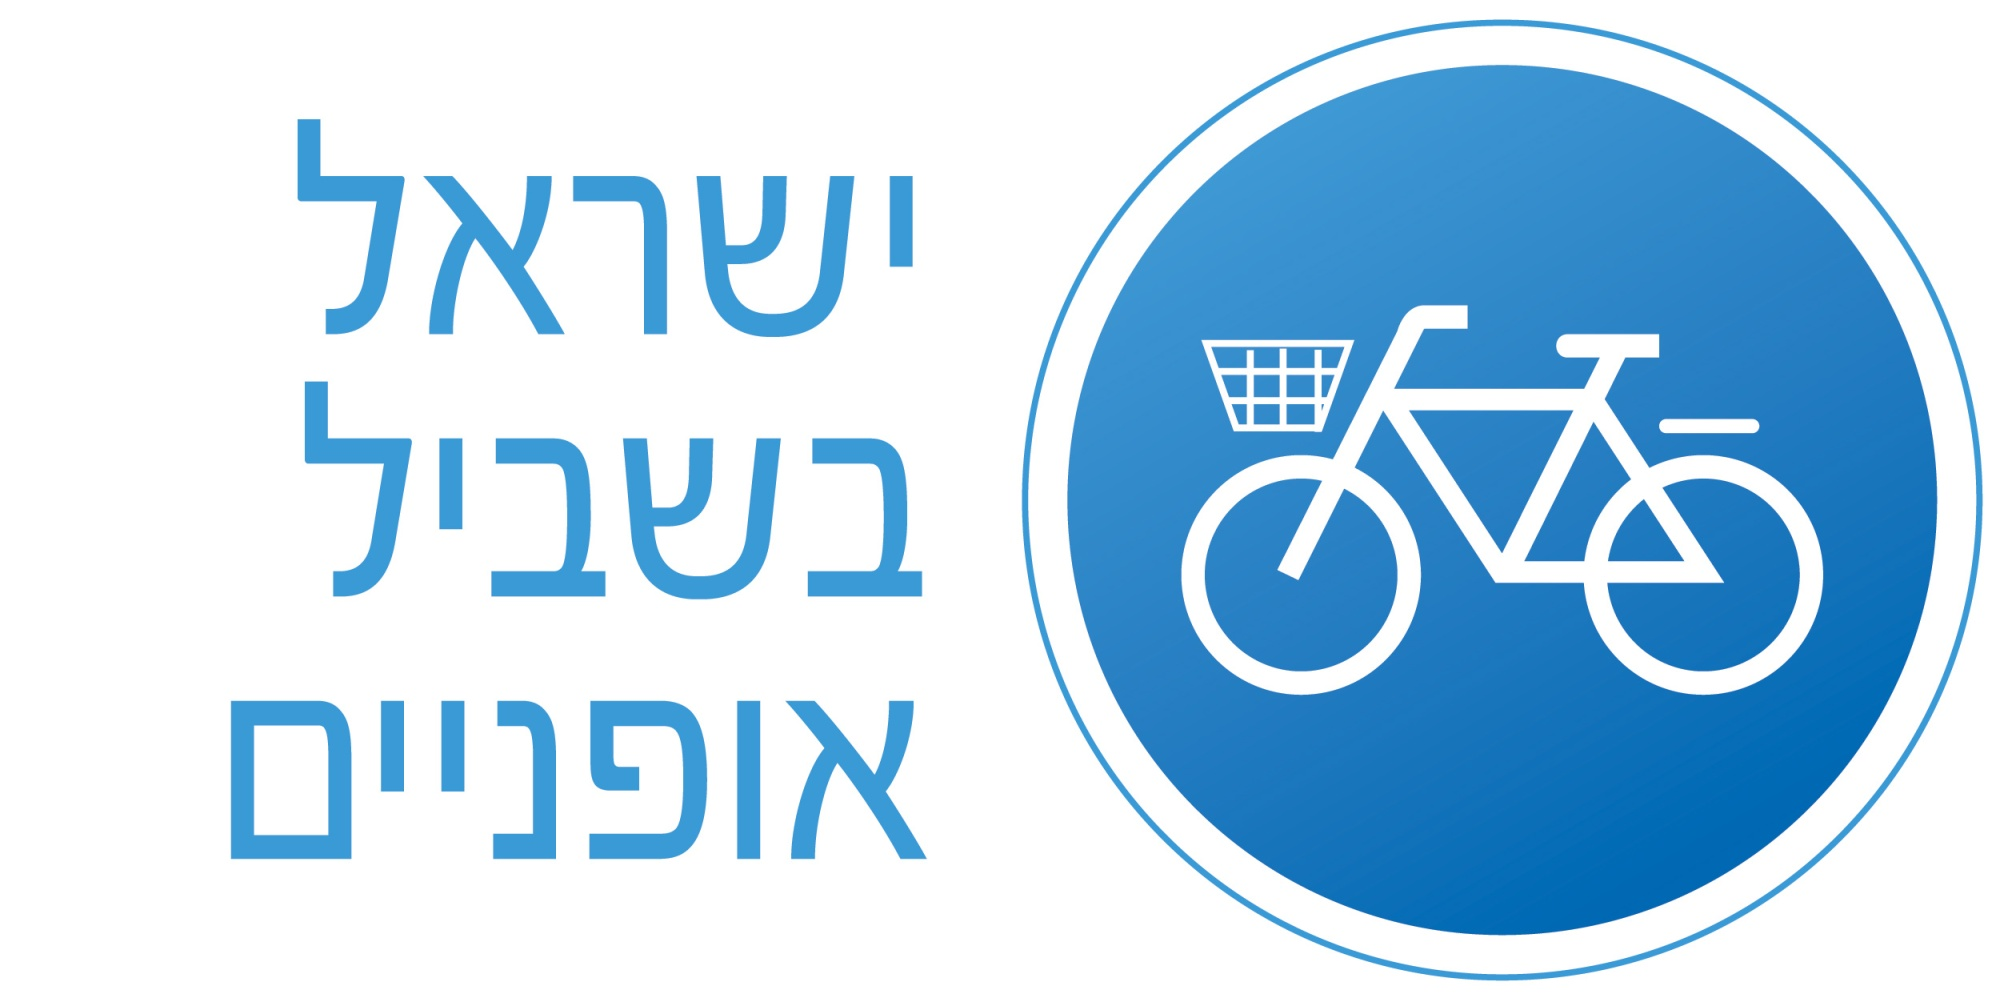 Israel Bicycle Association